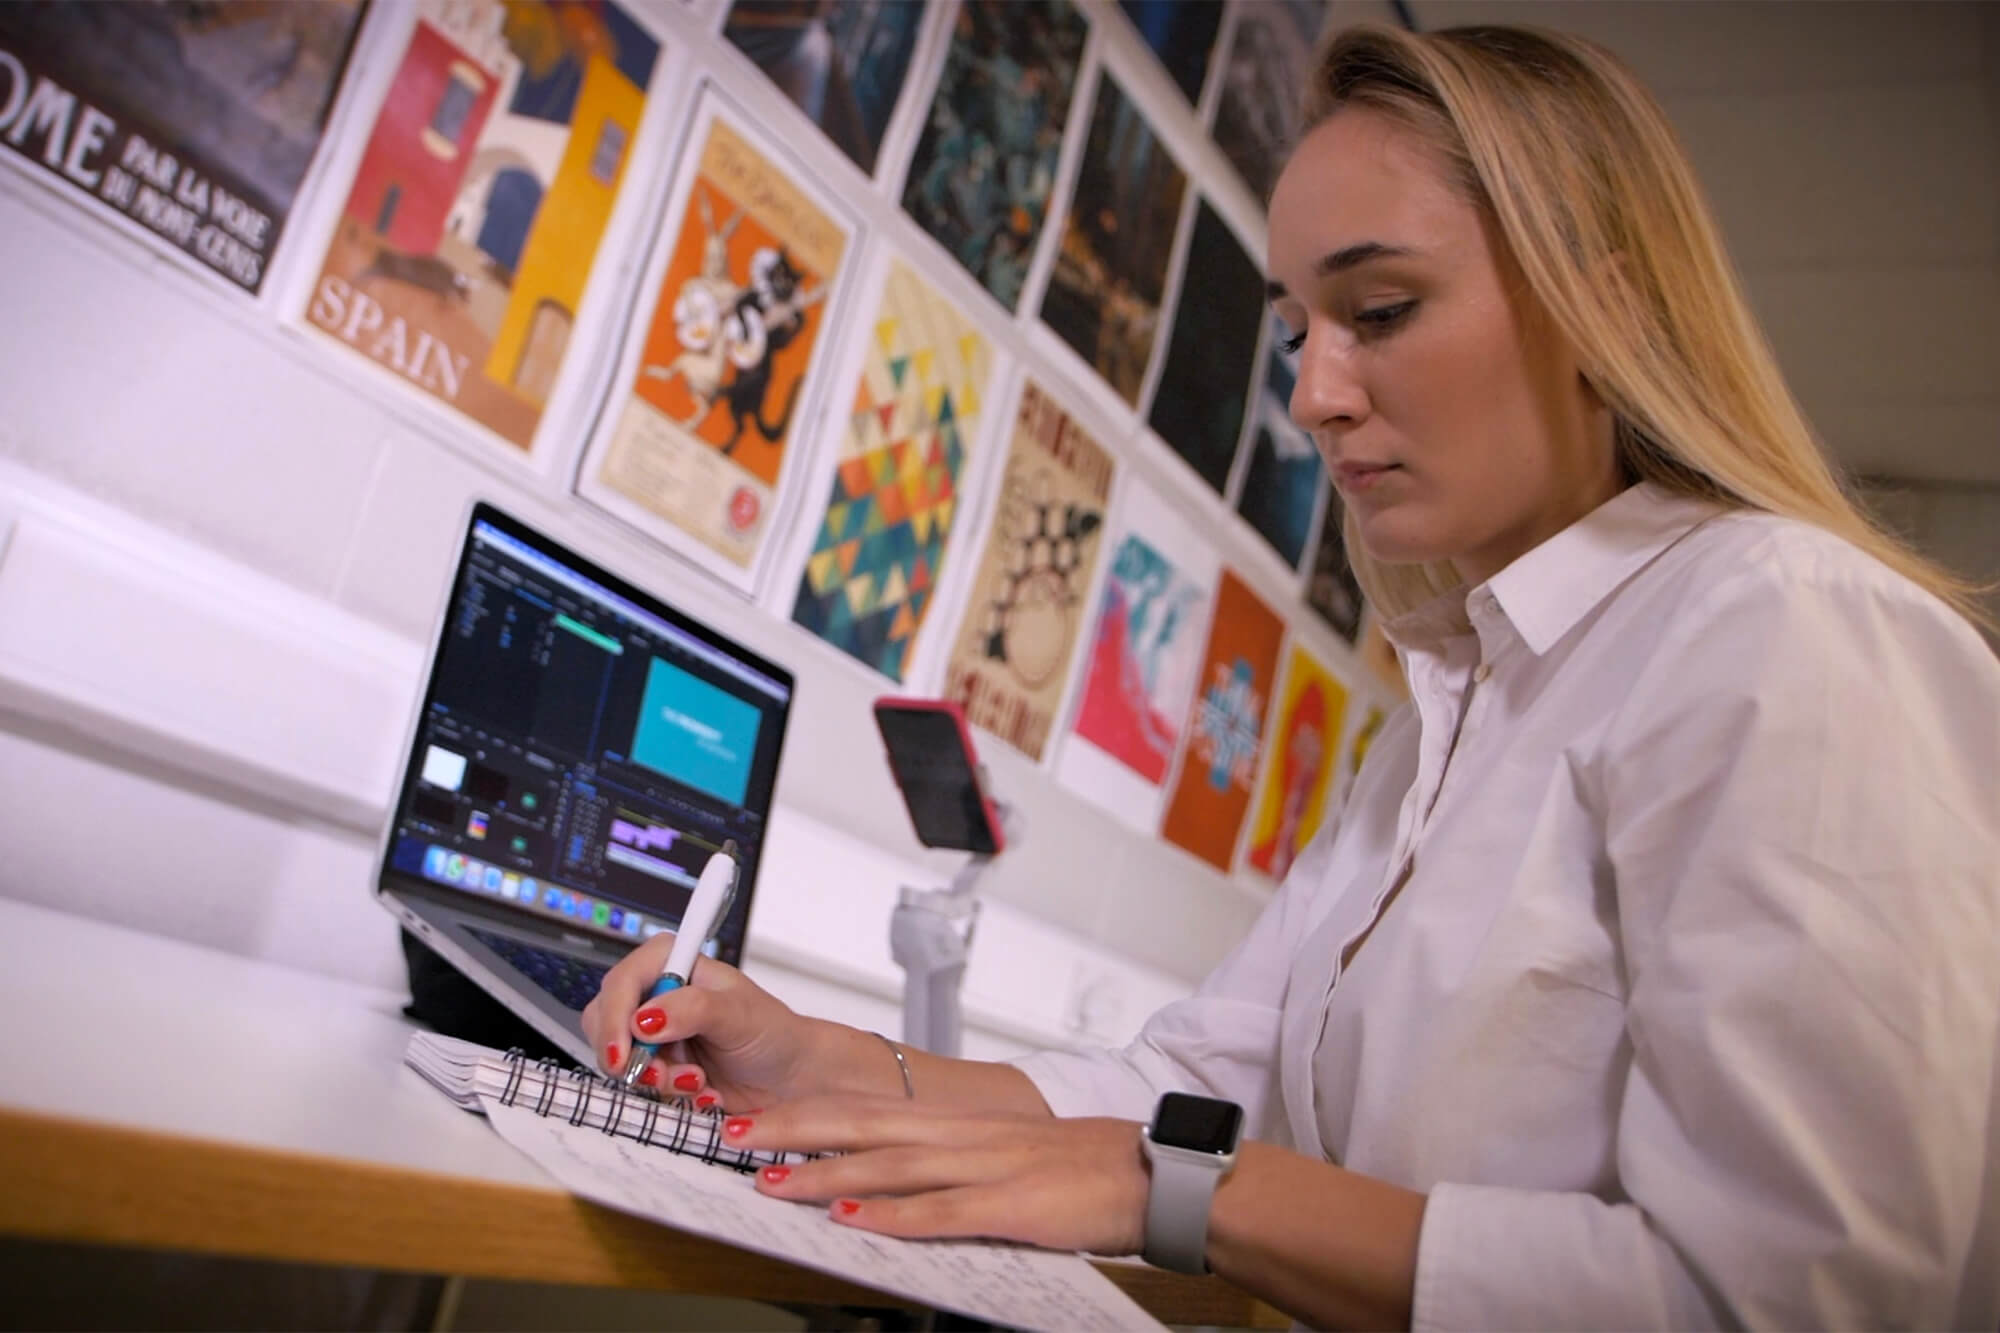 Barbora Horackova at work, making notes. A laptop and mobile device sit on a desk. Graphic design images on the walls